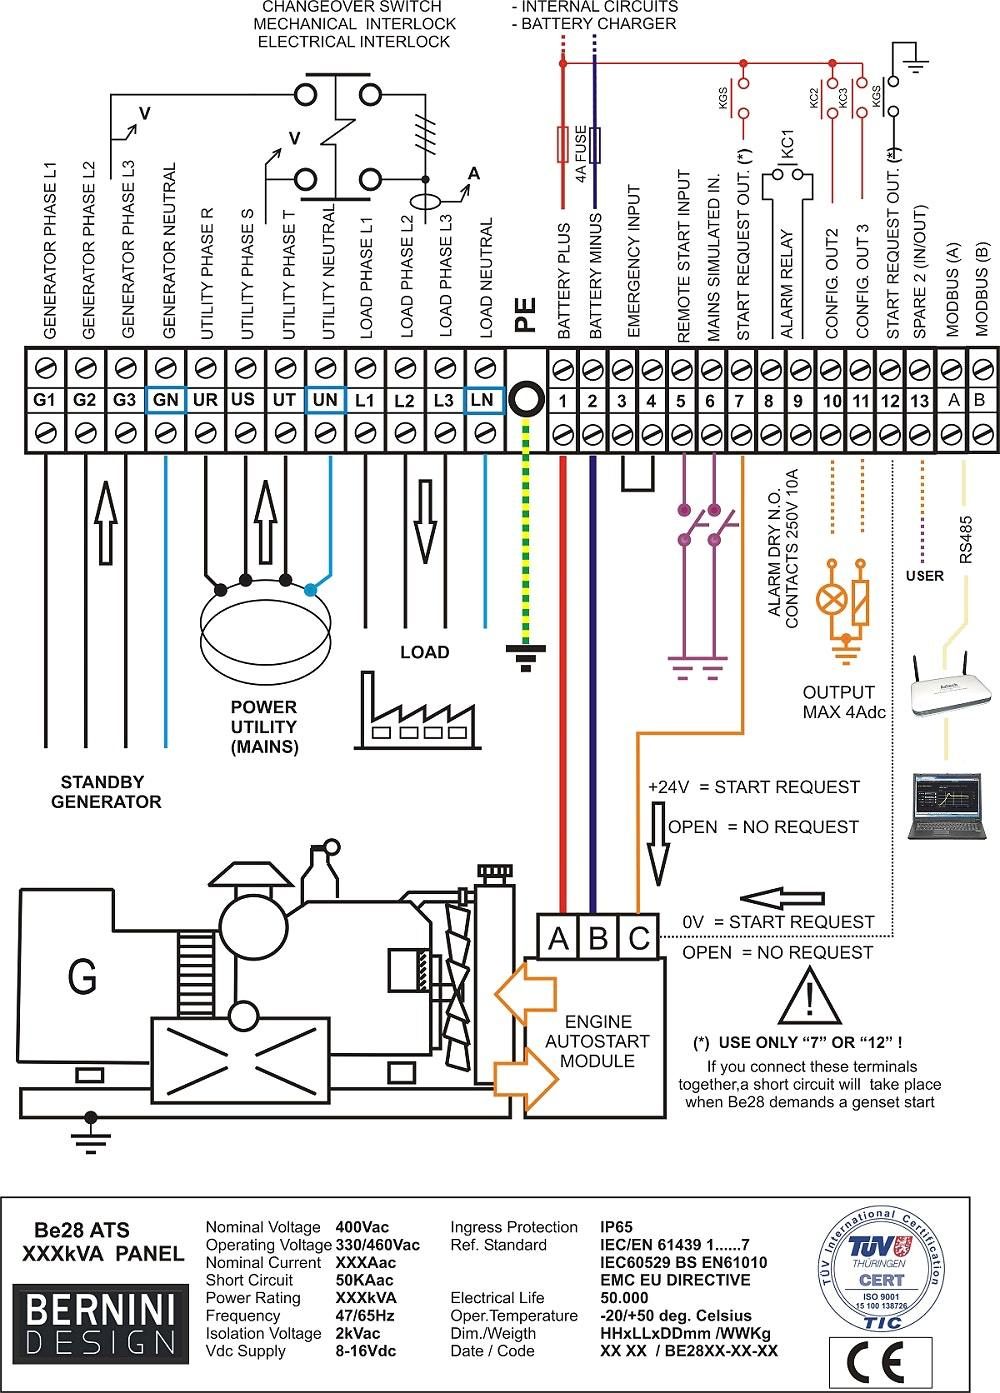 generac automatic transfer switch wiring diagram Collection-an Transfer Switch Wiring Diagram Collection Generac Automatic Transfer Switch Wiring Diagram At To 11 20-f